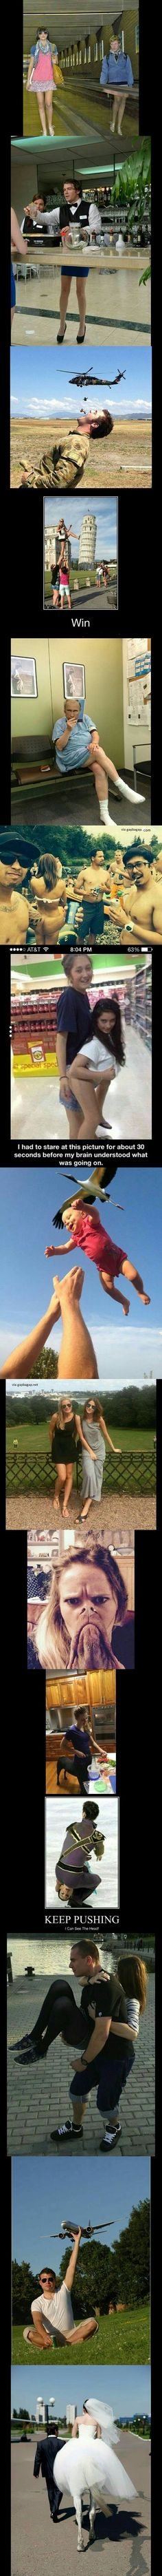 Top 15 Perfectly Timed Funny Pictures